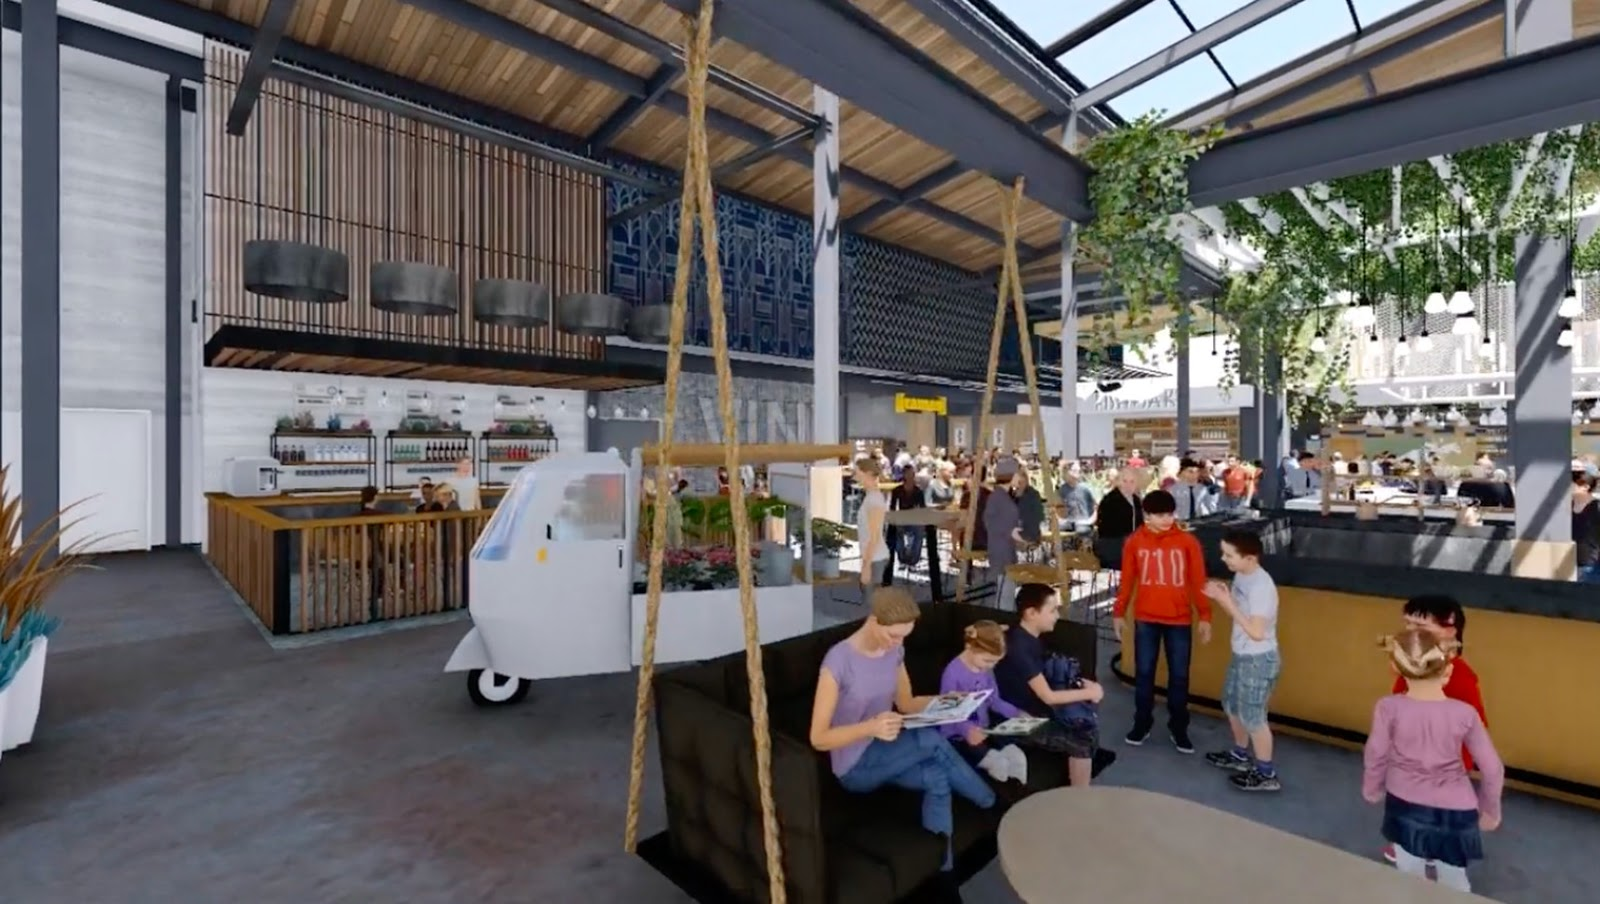 Sandiegoville Gigantic New Food Hall To Open In San Diegos North